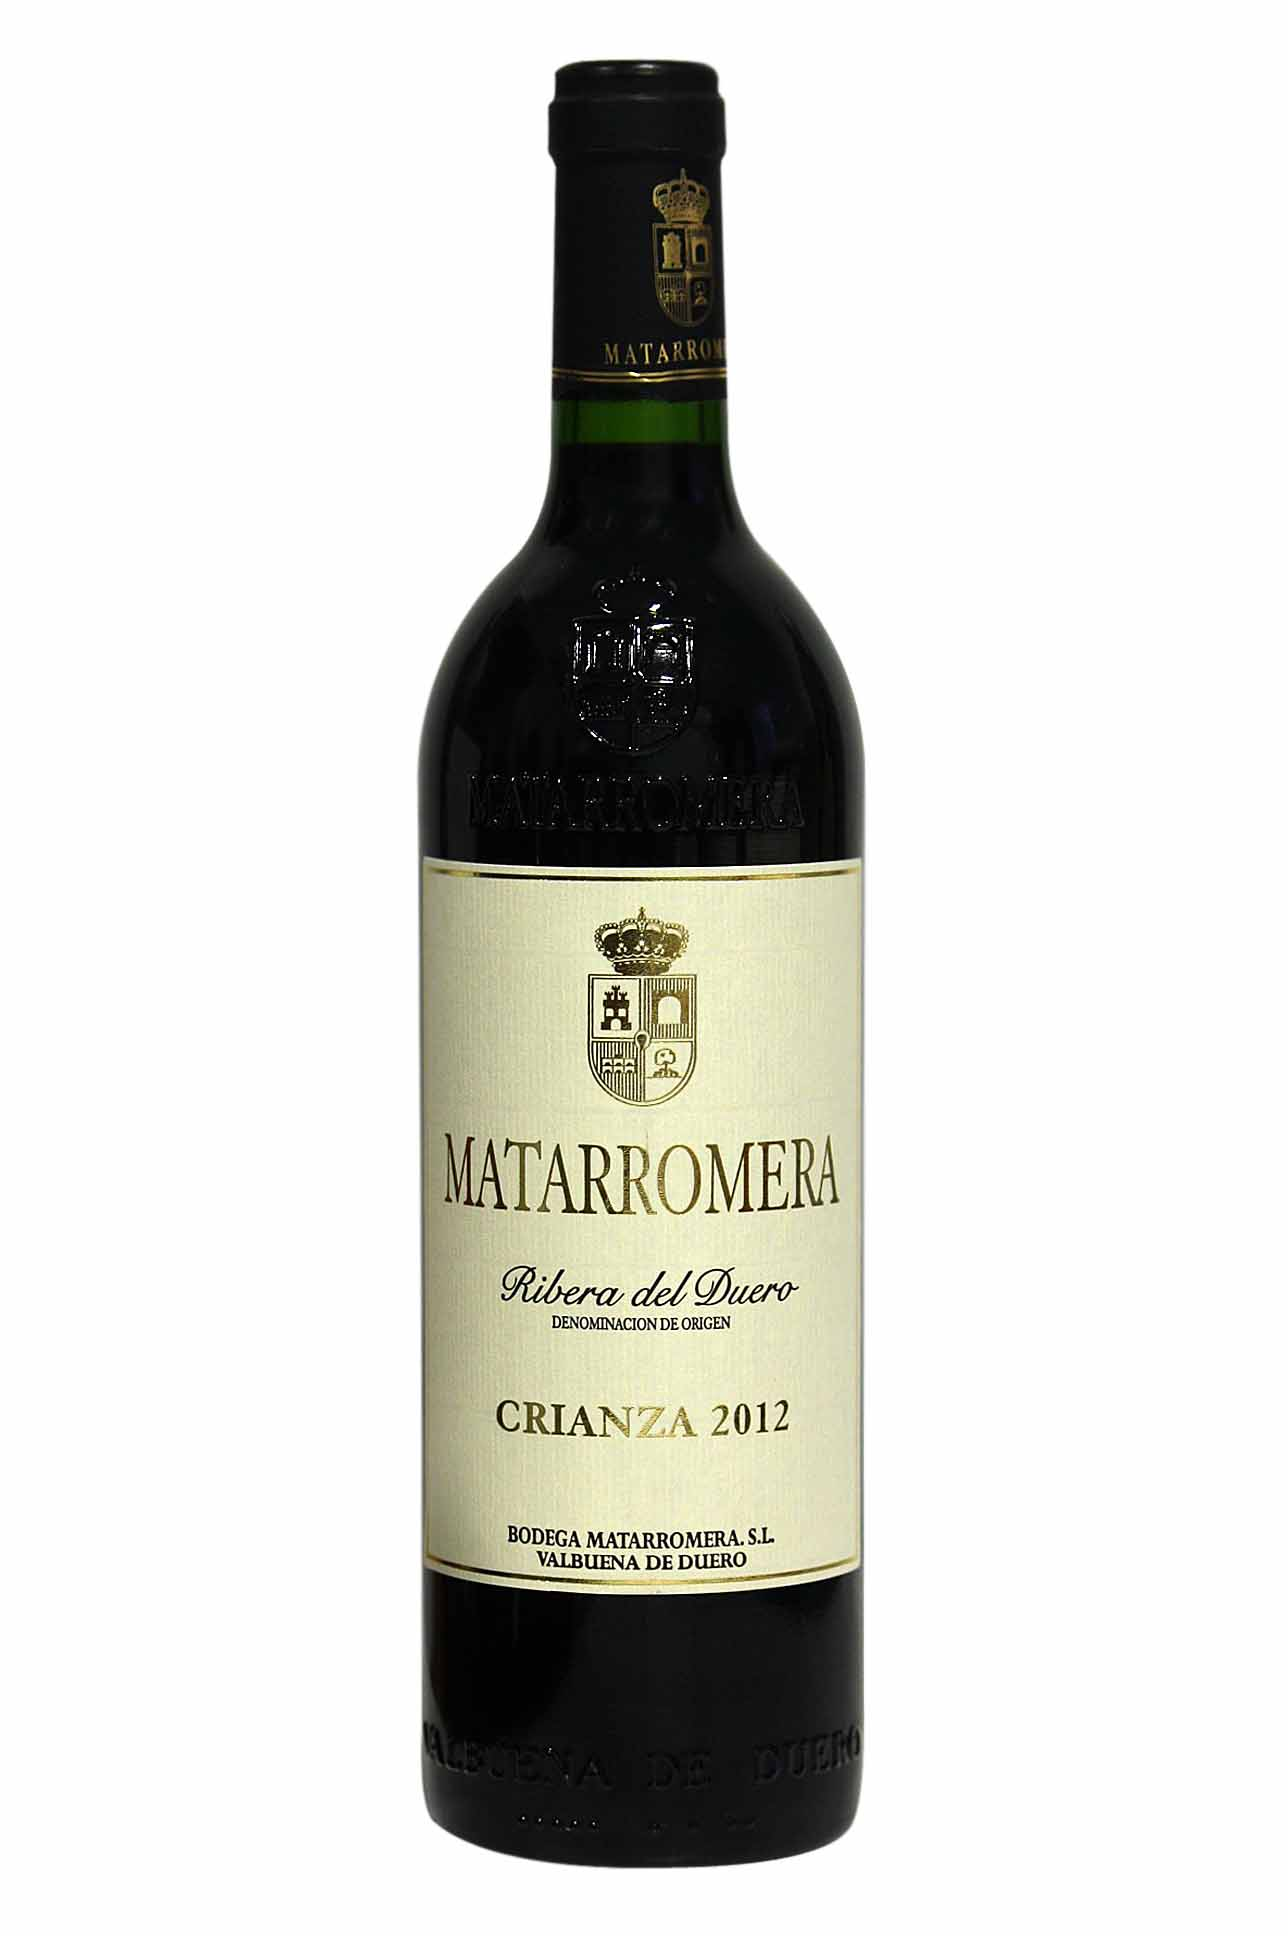 Matarrromera aged red wine